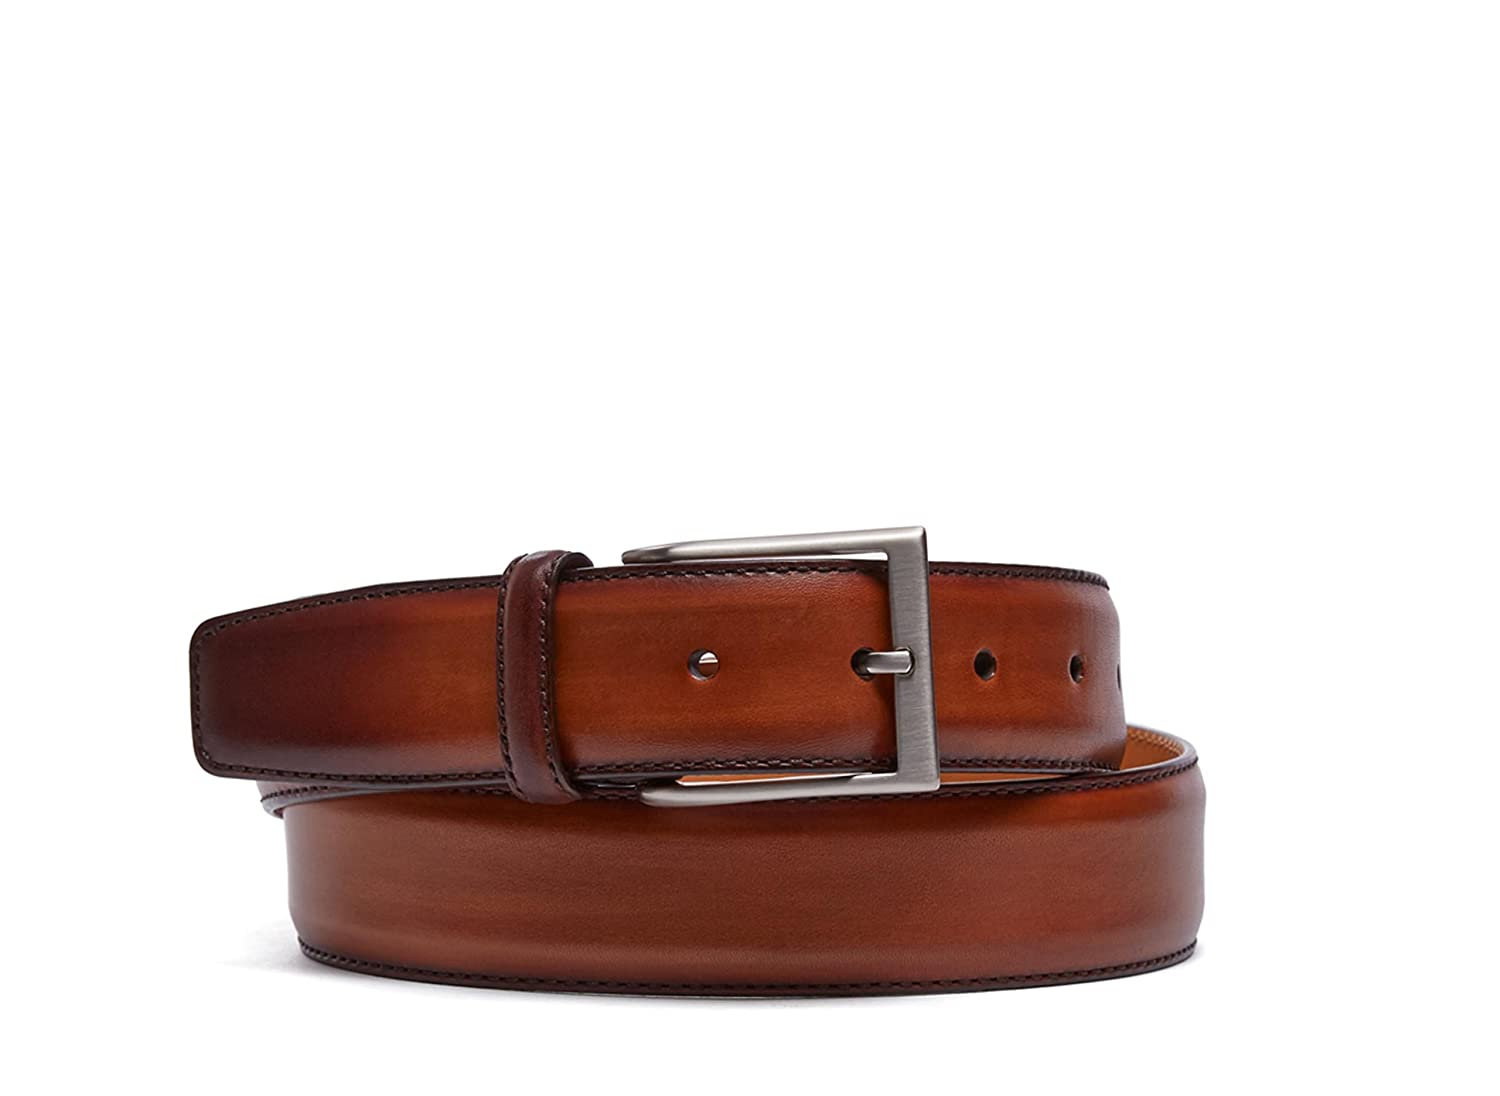 Magnanni Boltan Cognac Men's Leather Belt